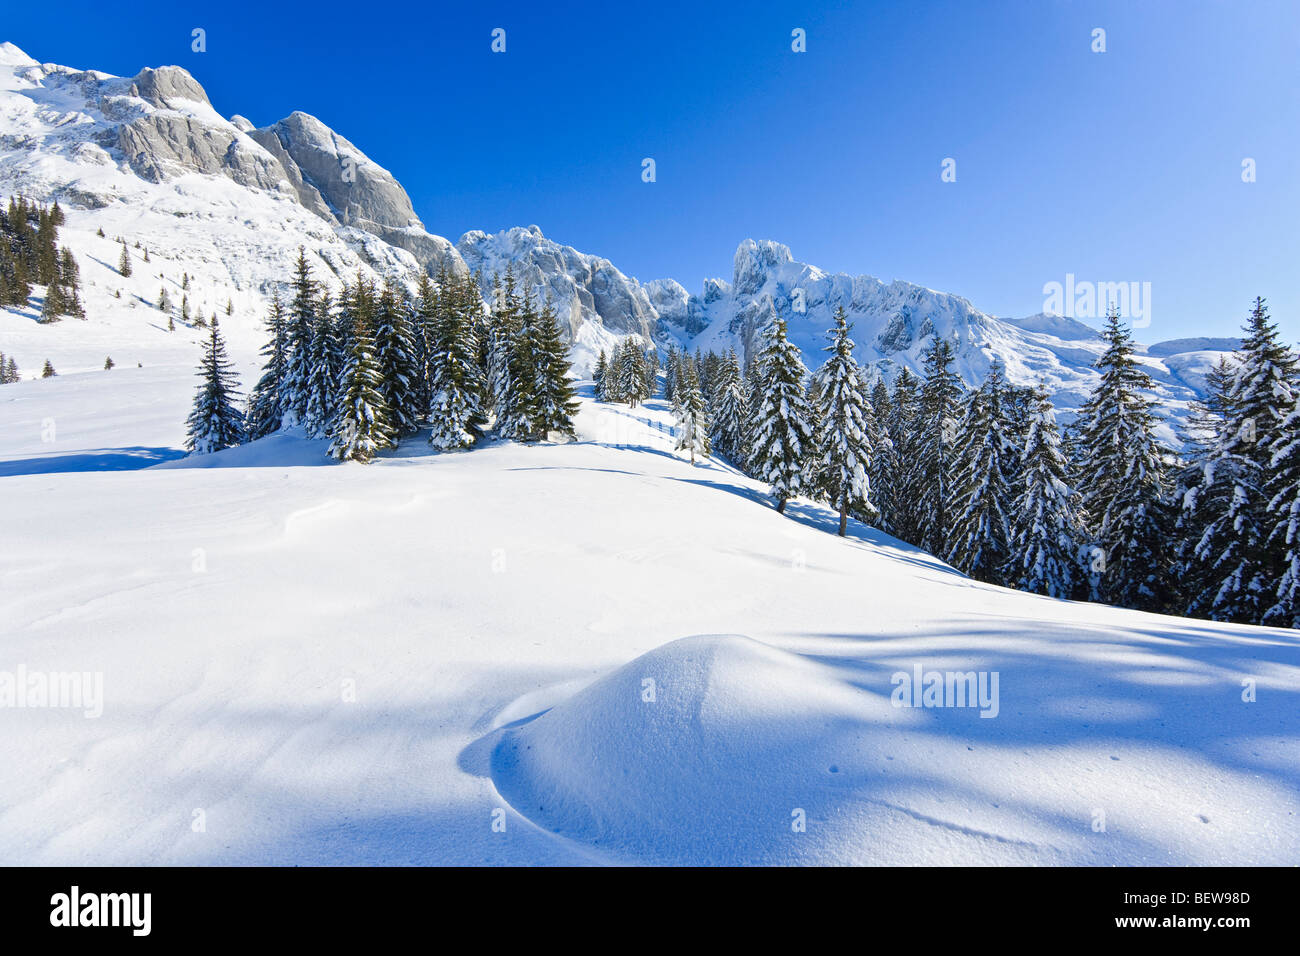 Winter landscape with firs and mountains in the background, Salzburg, Austria - Stock Image